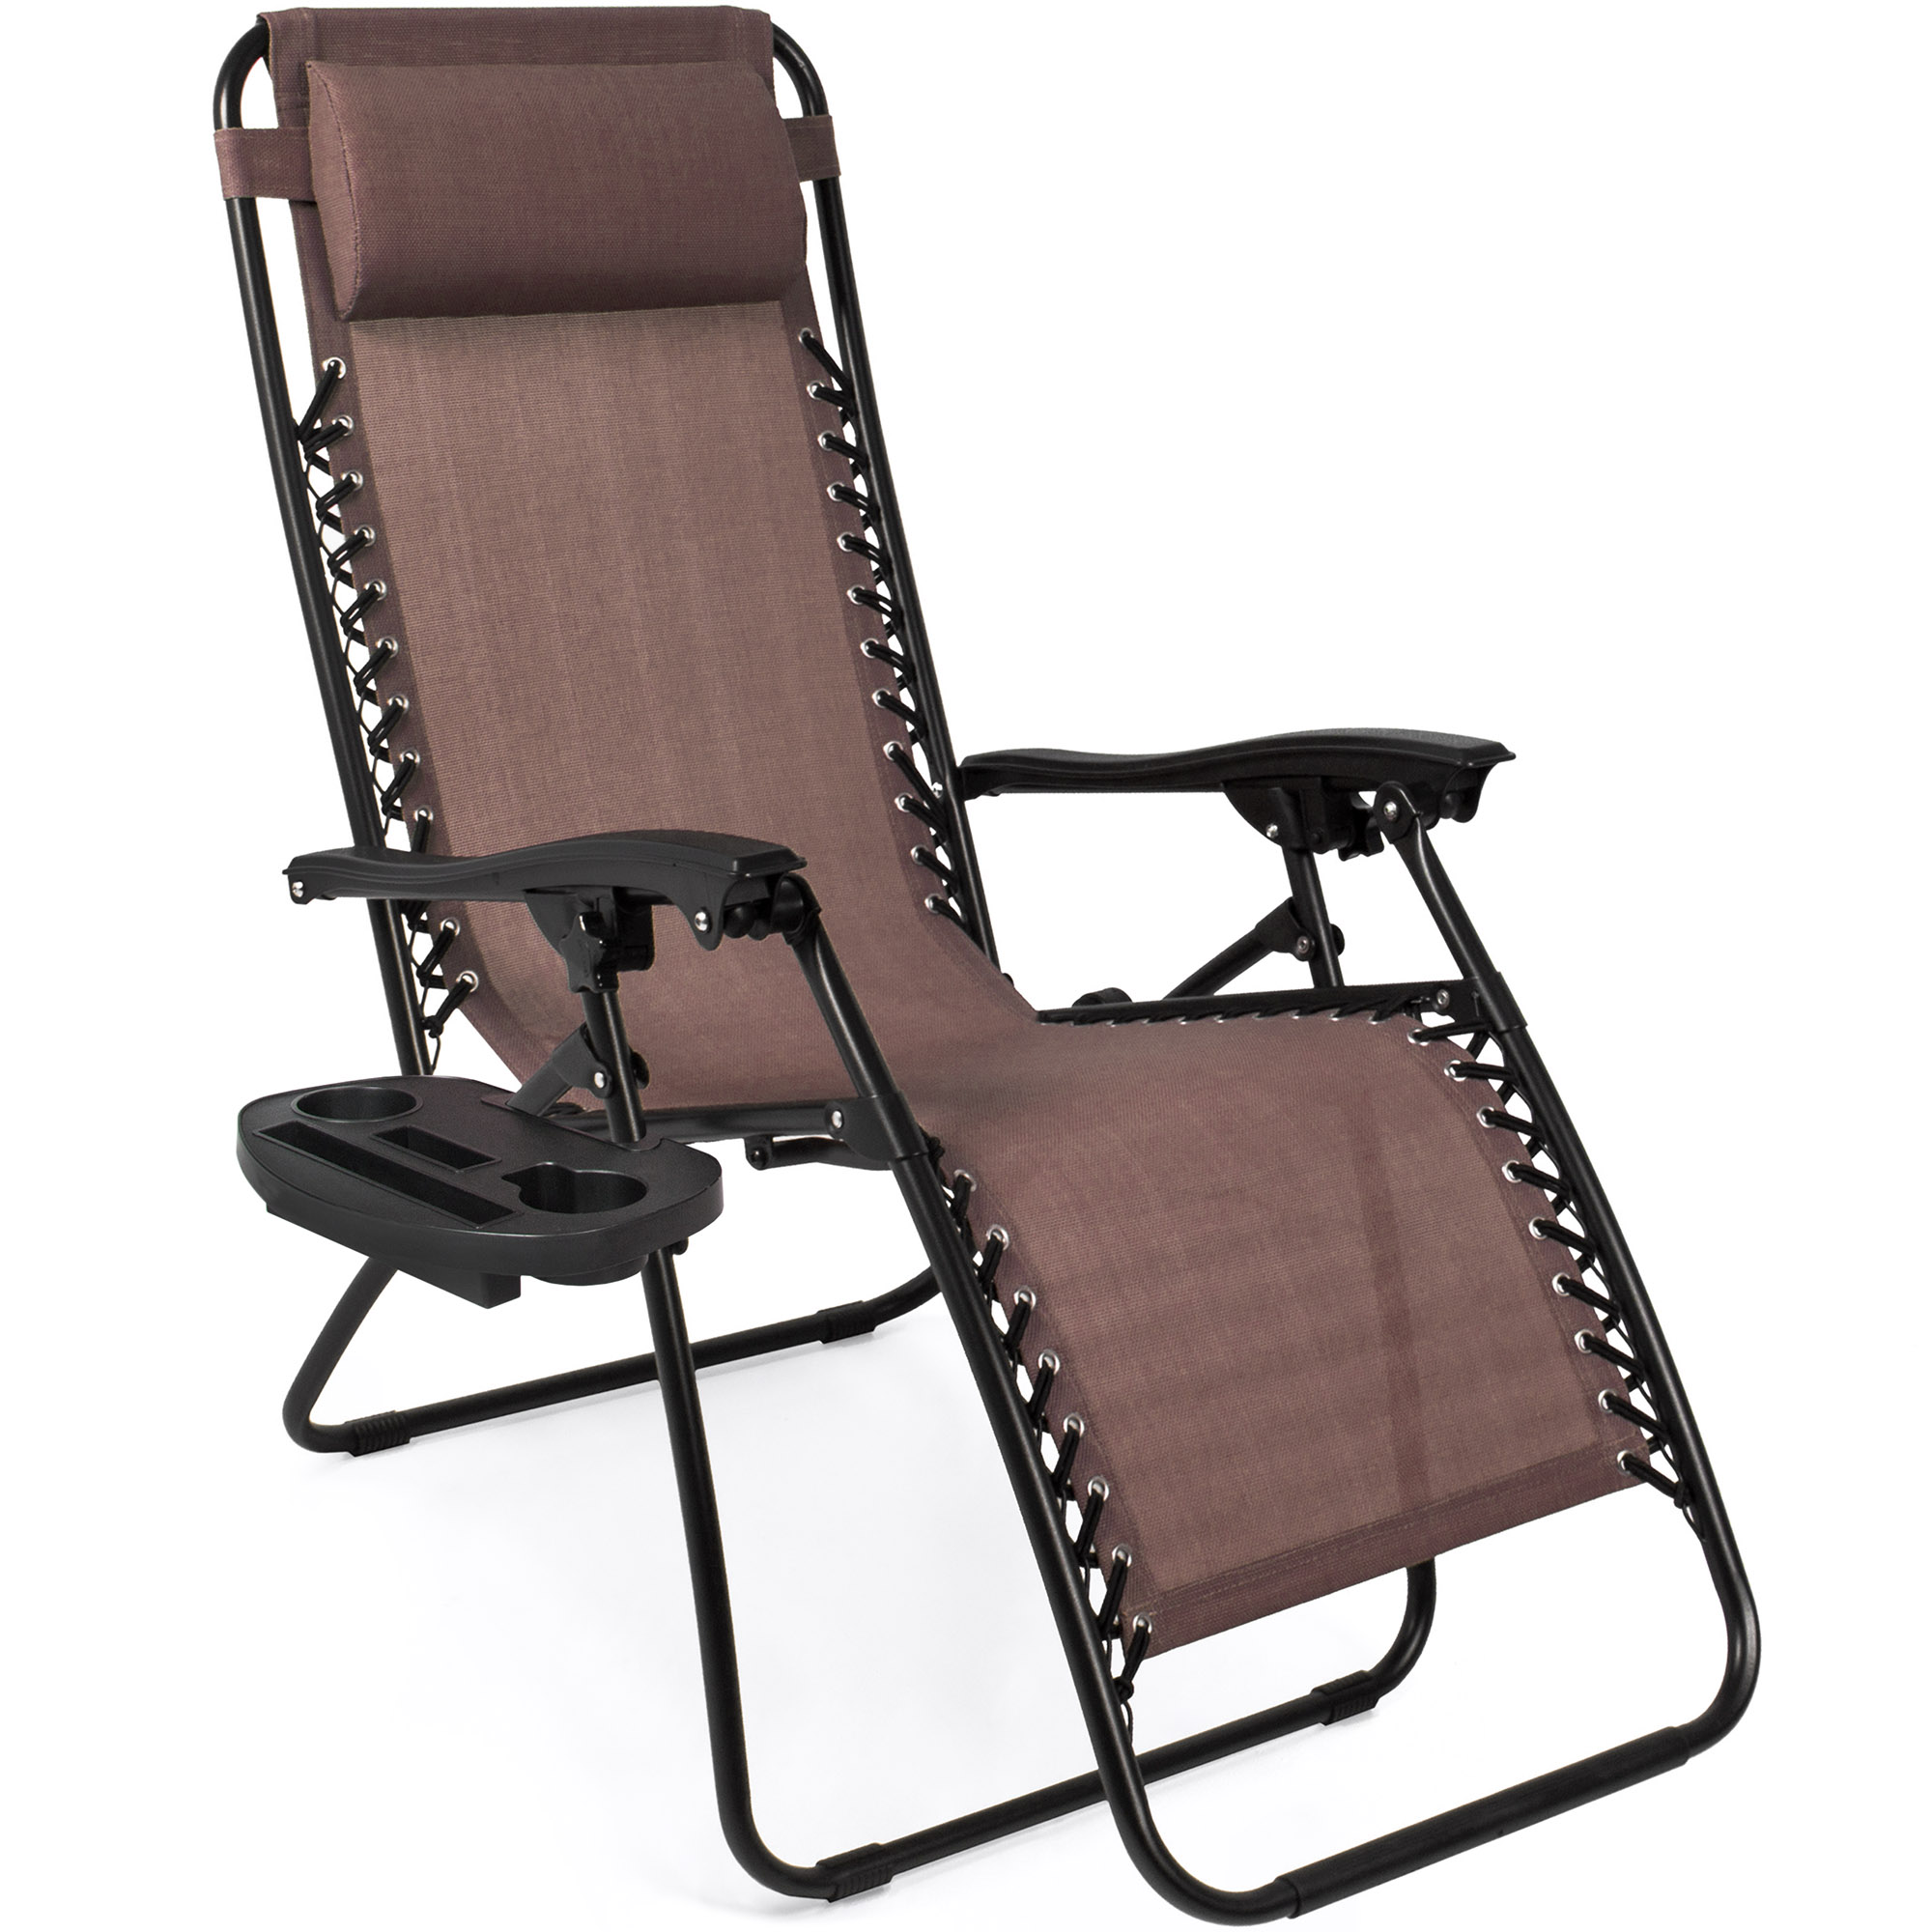 BCP-Set-of-2-Adjustable-Zero-Gravity-Patio-Chair-Recliners-w-Cup-Holders thumbnail 31